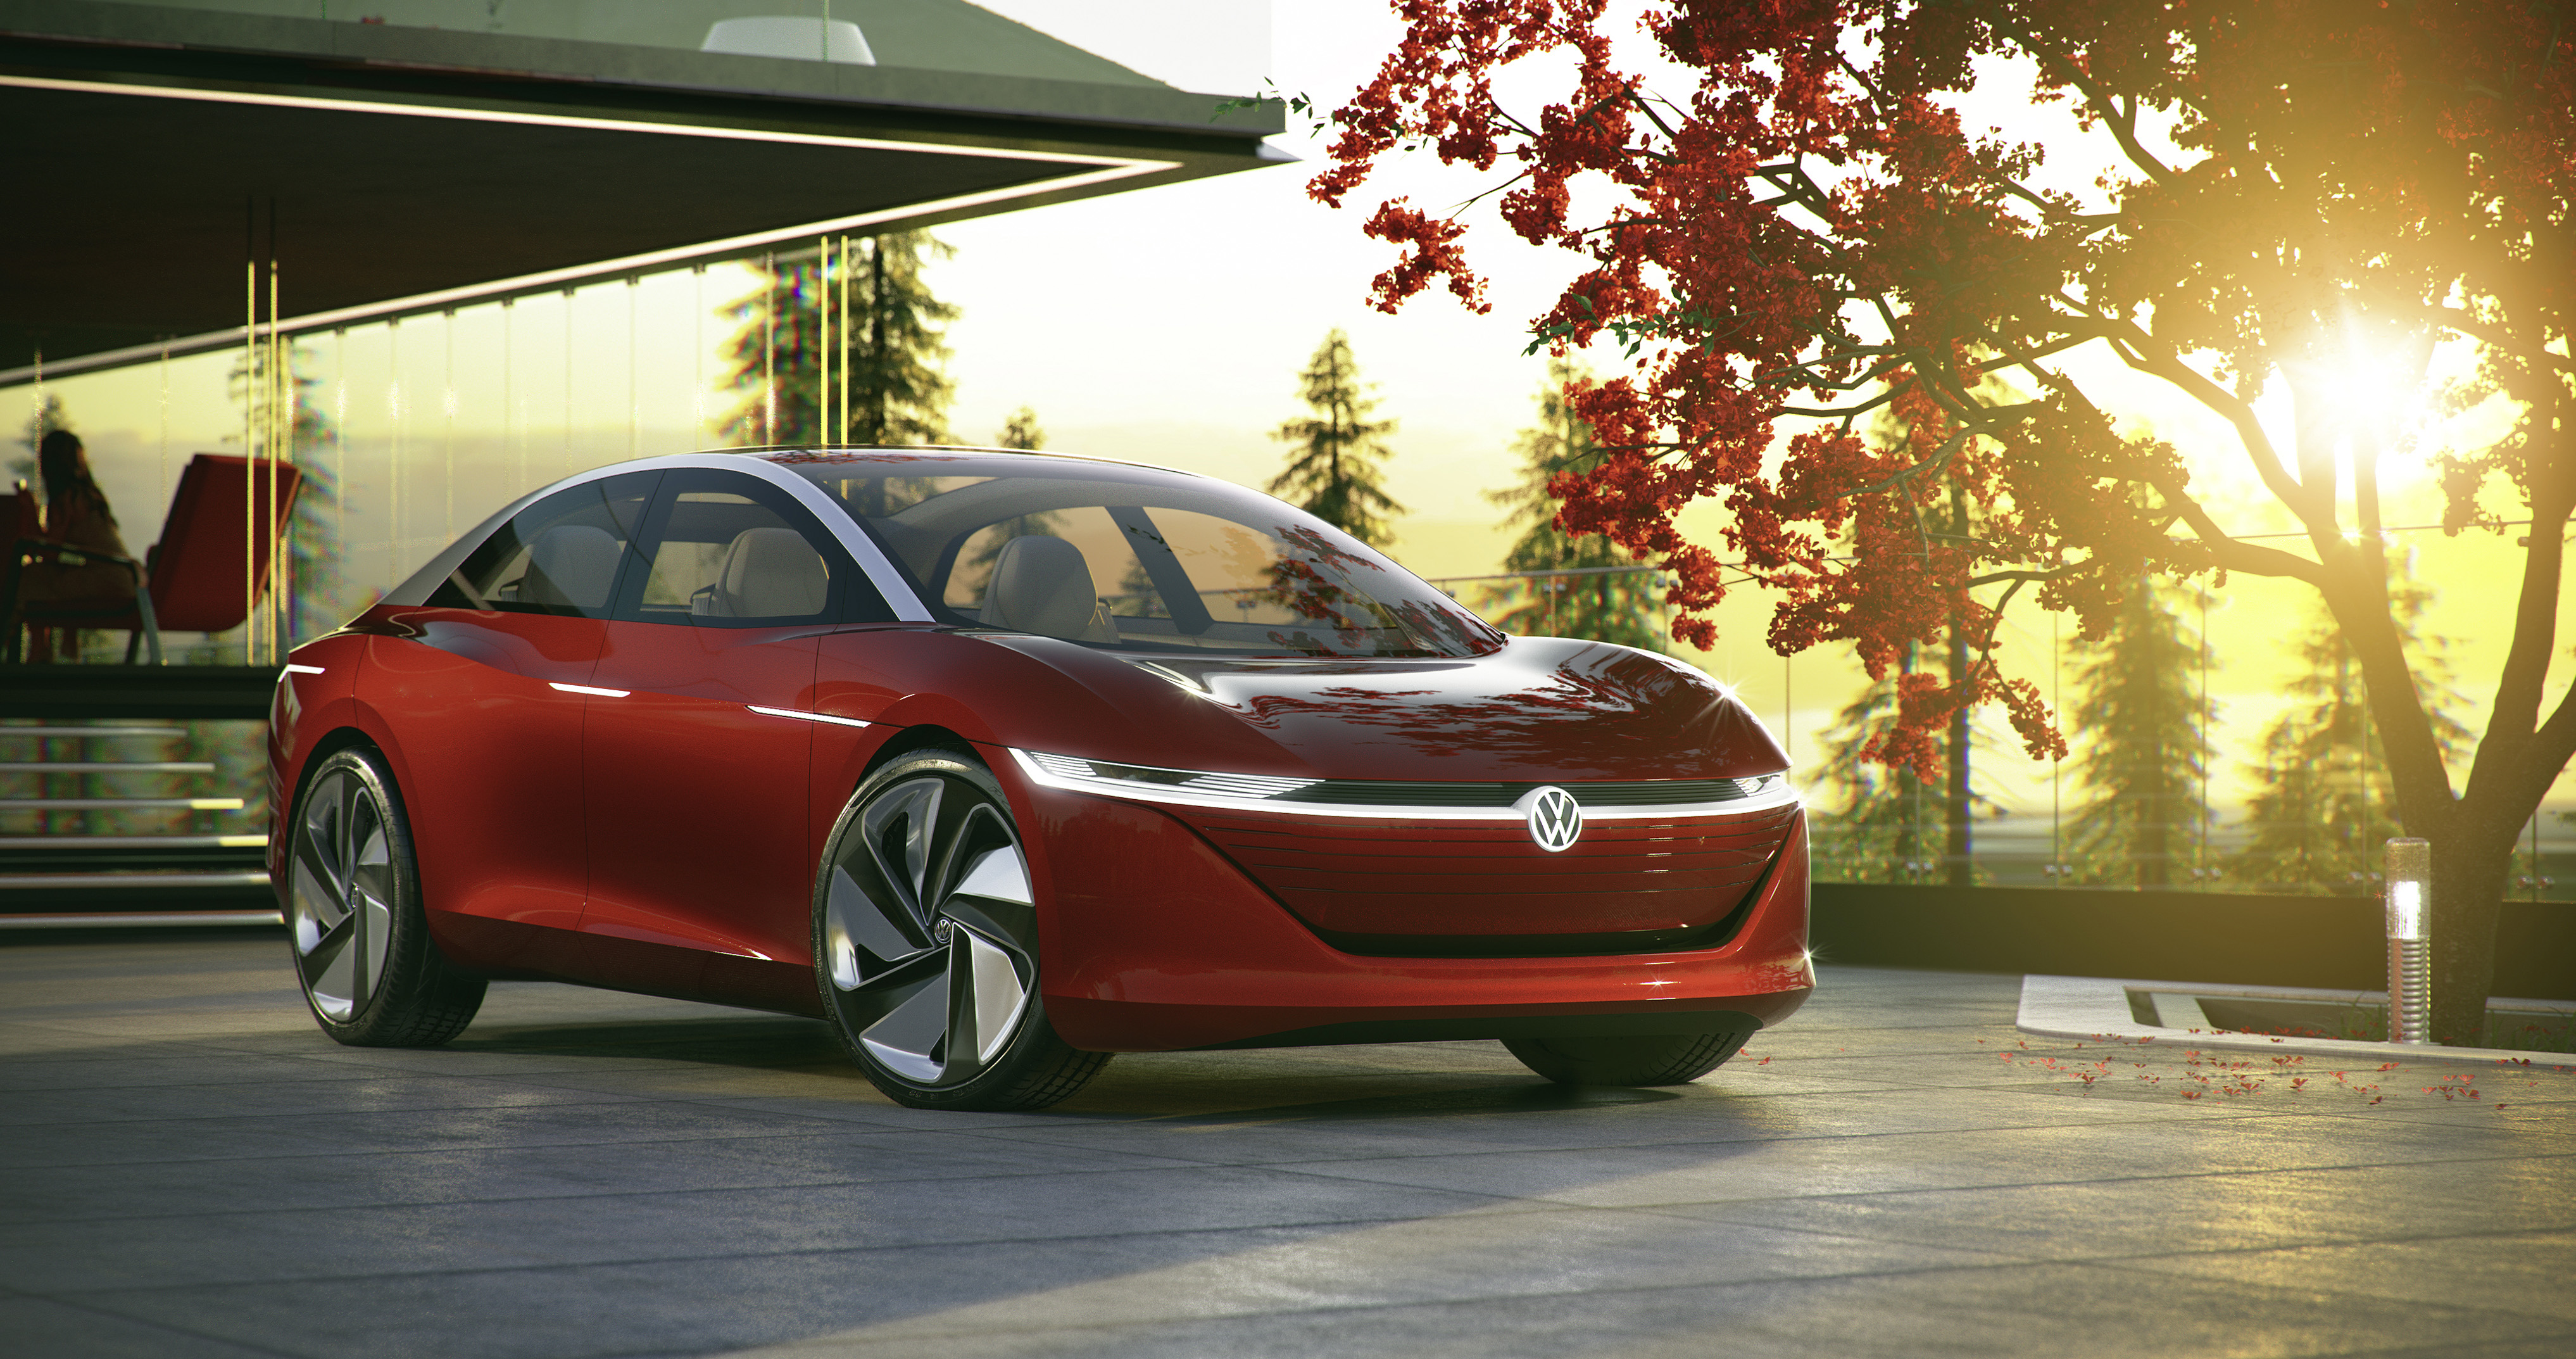 Vw Unveils New Id Electric Sedan 111 Kwh Battery Pack Self Driving Volkswagen Panel Van Red Motor World German Says That The Vehicle Is Equipped With A Dual Powertrain Total Output Of 225 Kw